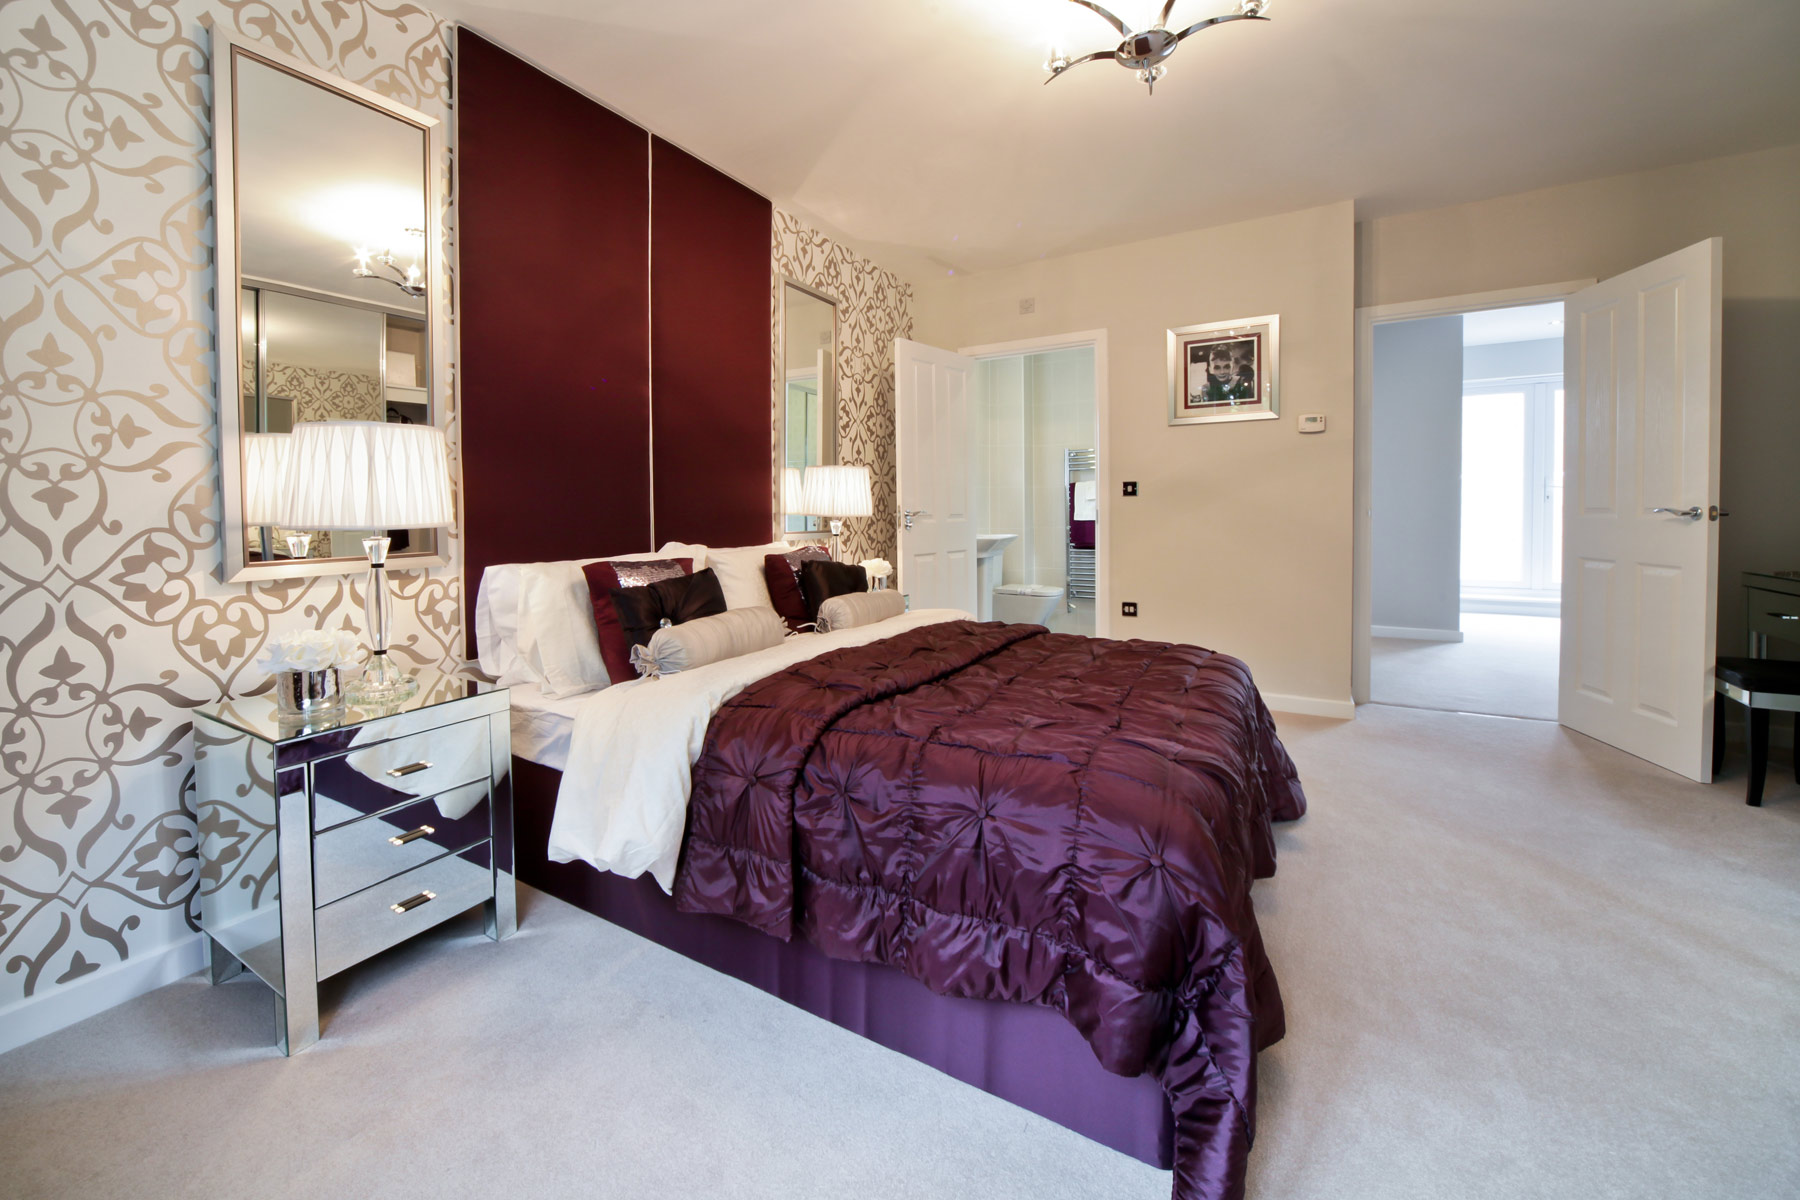 A typical Taylor Wimpey master bedroom